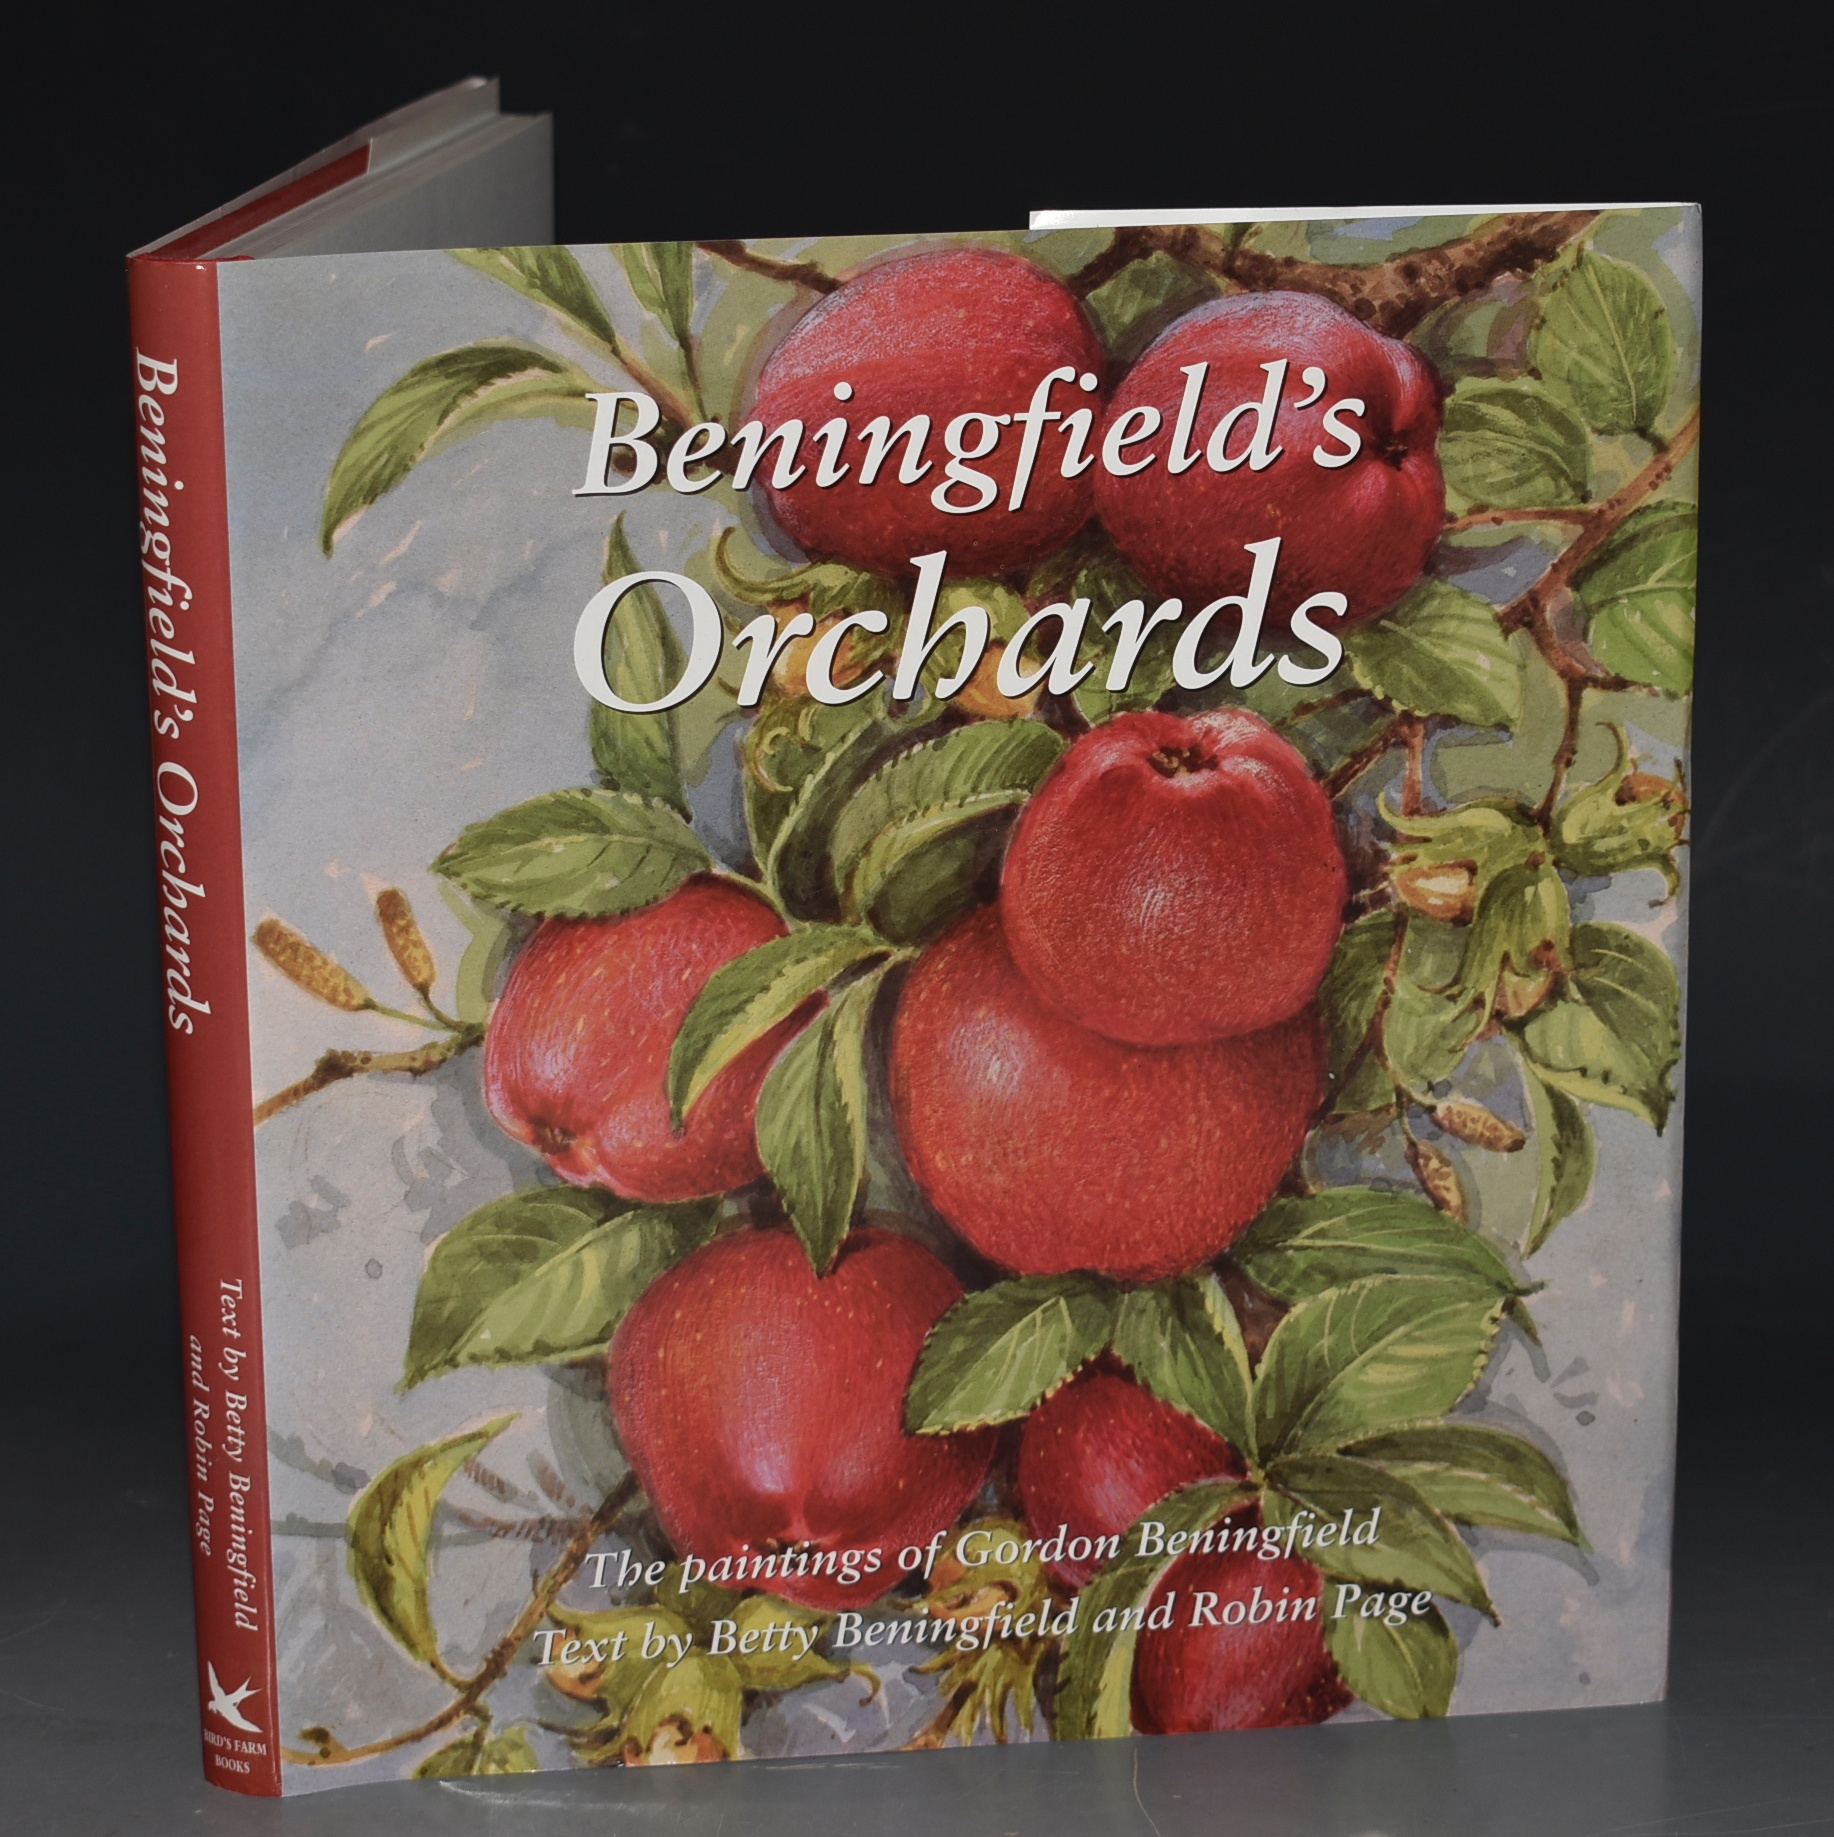 Image for Beningfield's Orchards. The paintings of Gordon Beningfield. Text by Bett Beningfield and Robin Page. Signed copy.